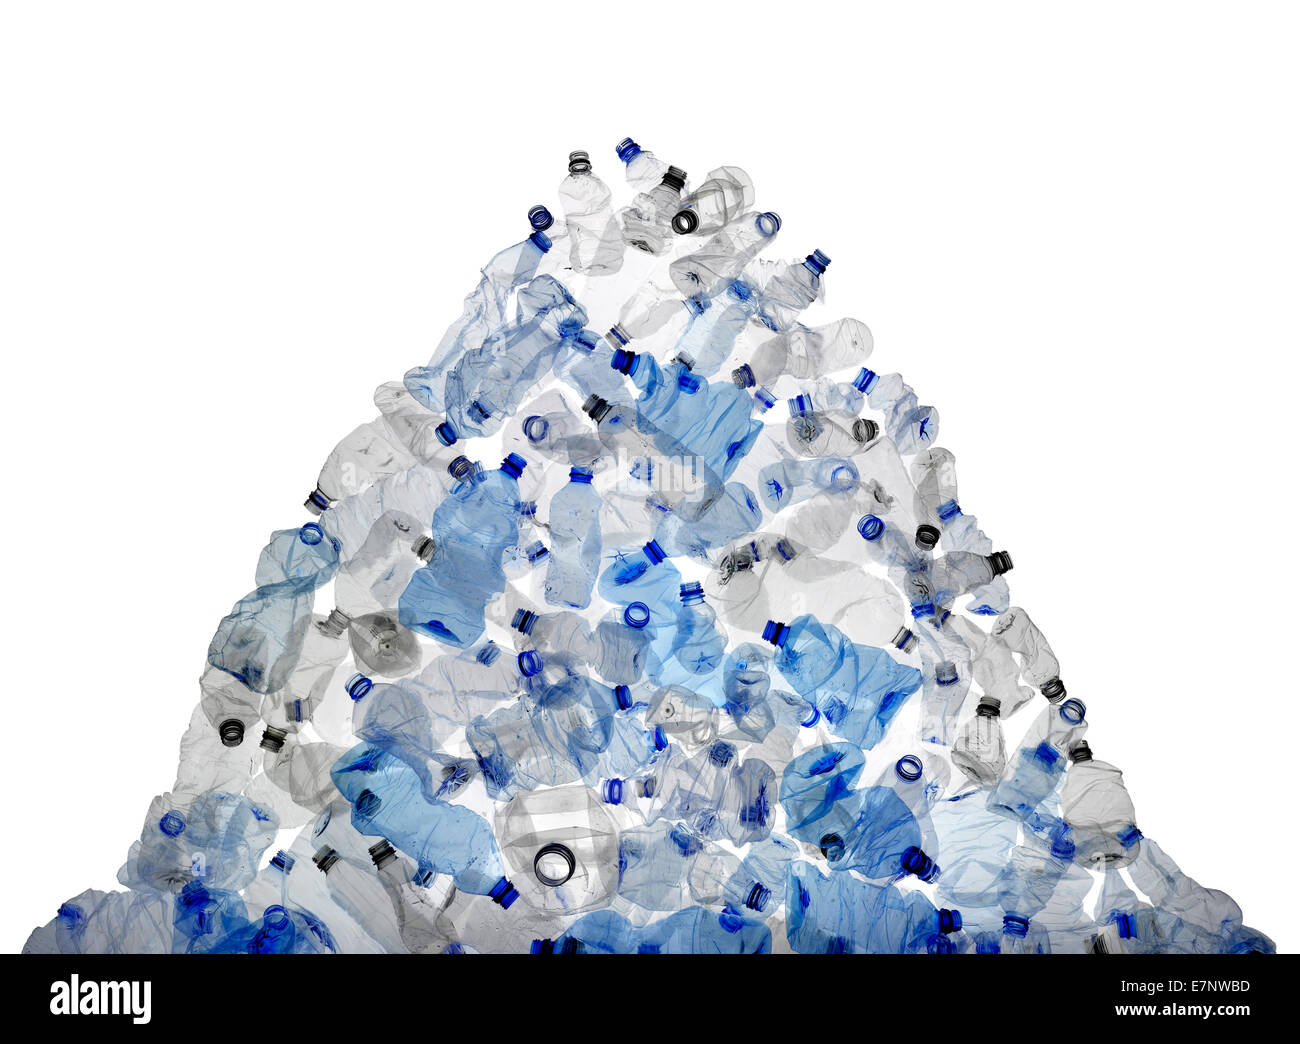 A large mound of discarded plastic bottles - Stock Image